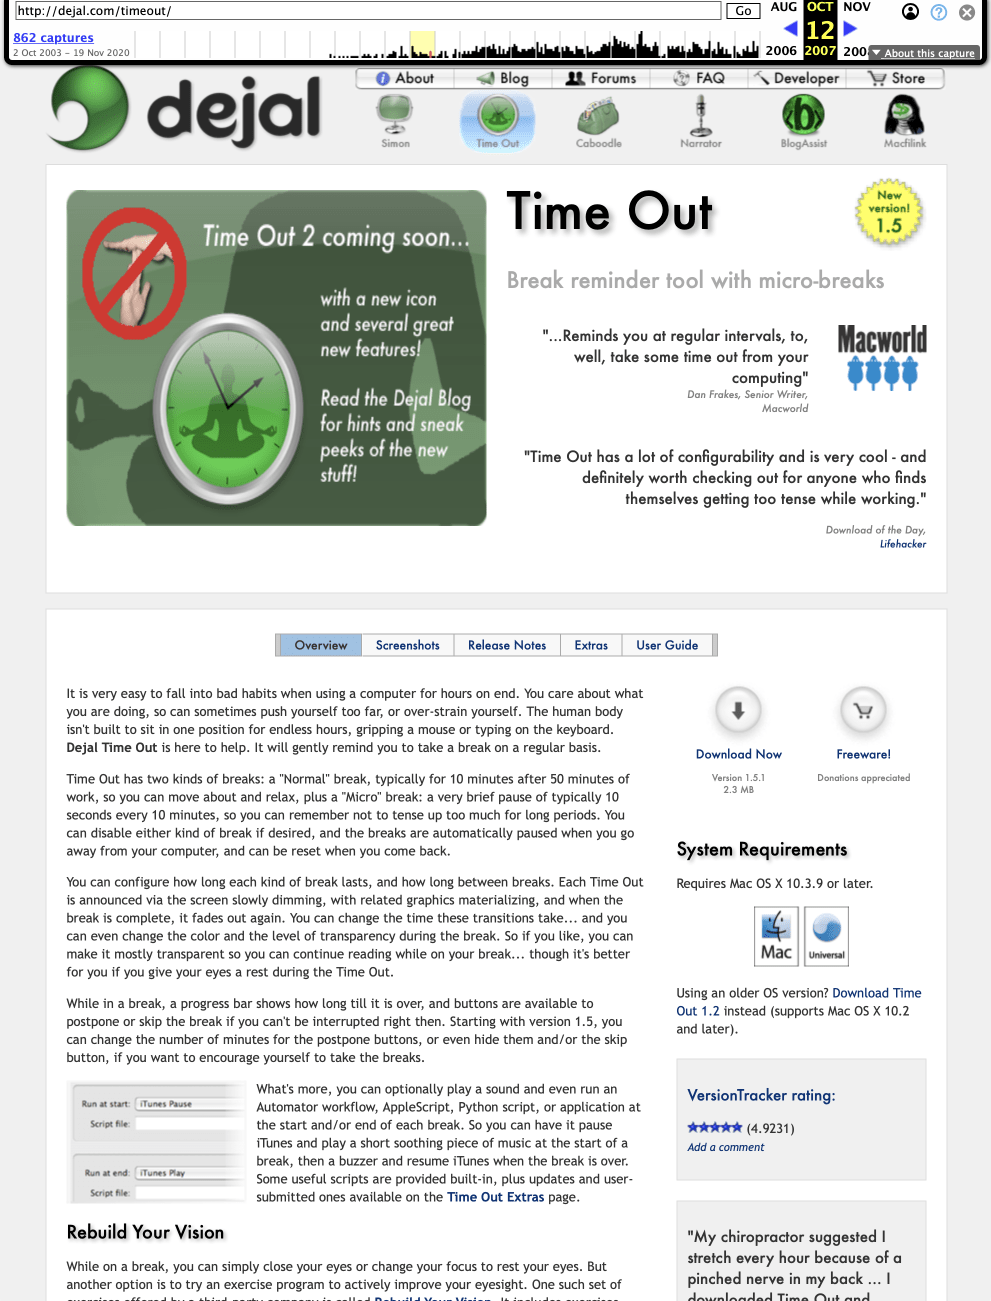 Time Out page from 2007